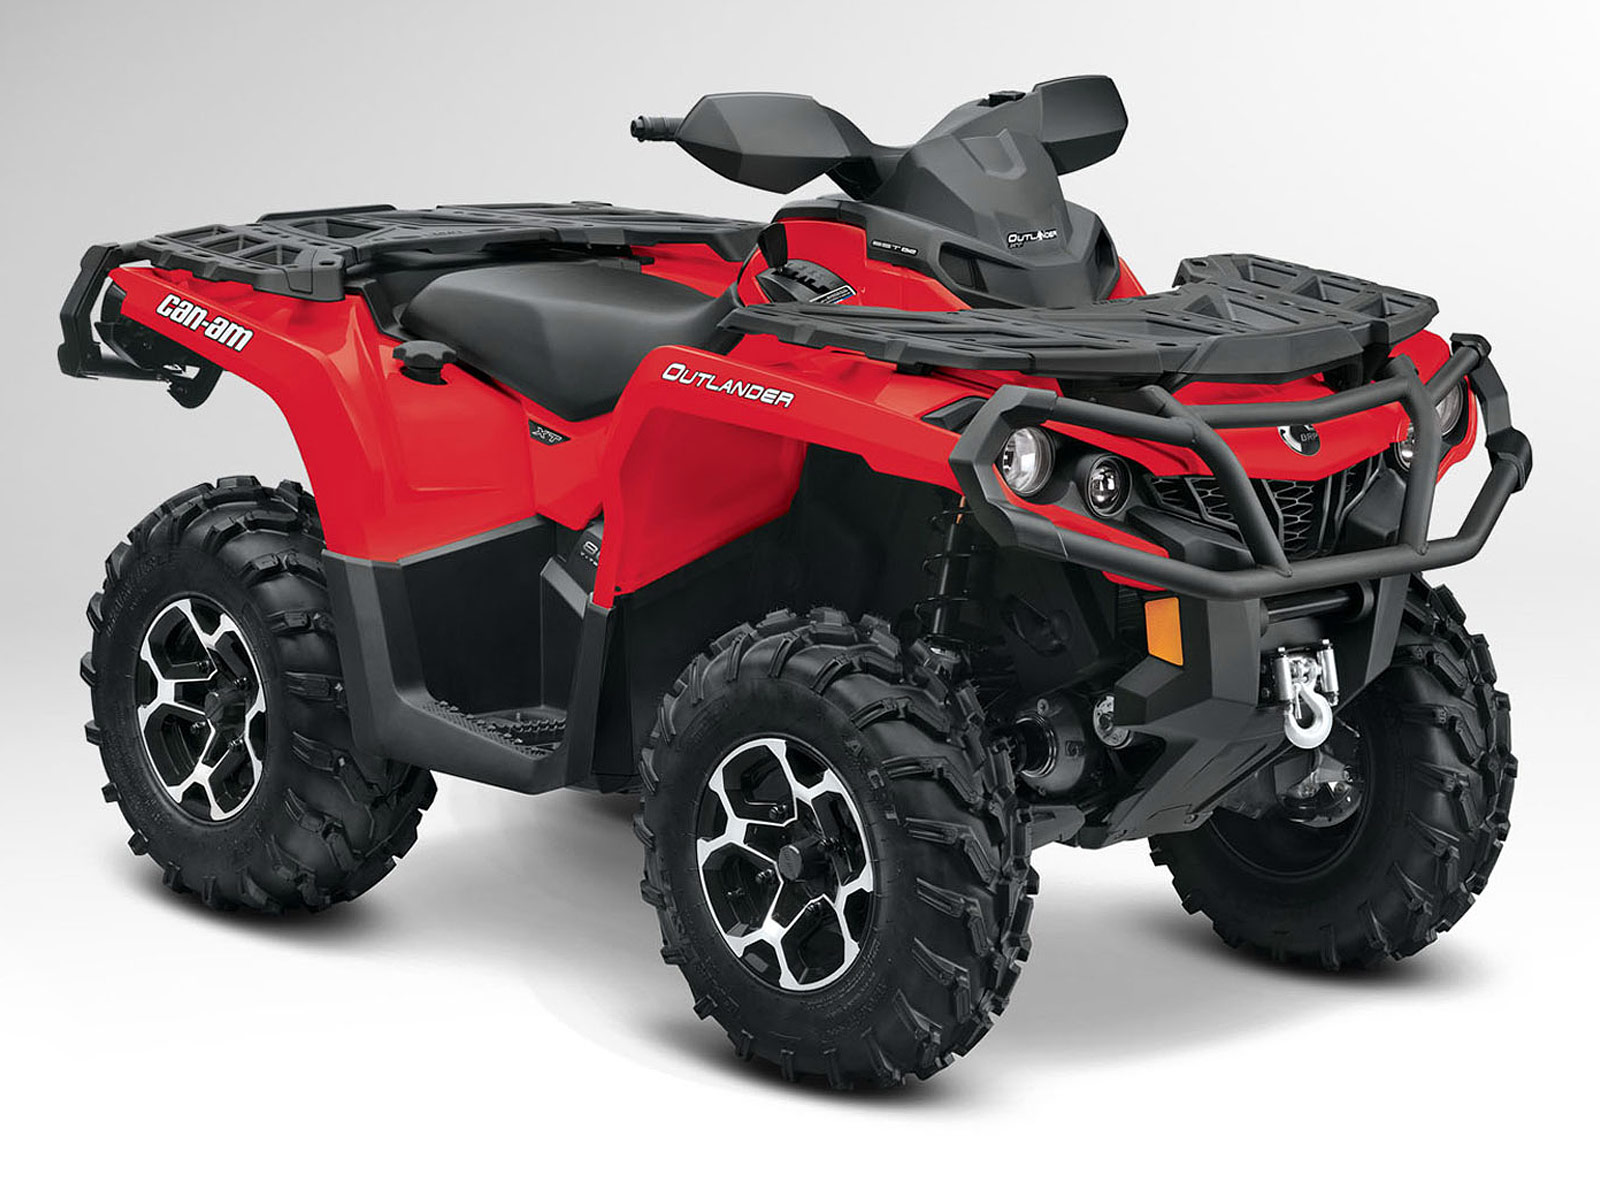 auto insurance information 2013 can am outlander xt 800r. Black Bedroom Furniture Sets. Home Design Ideas